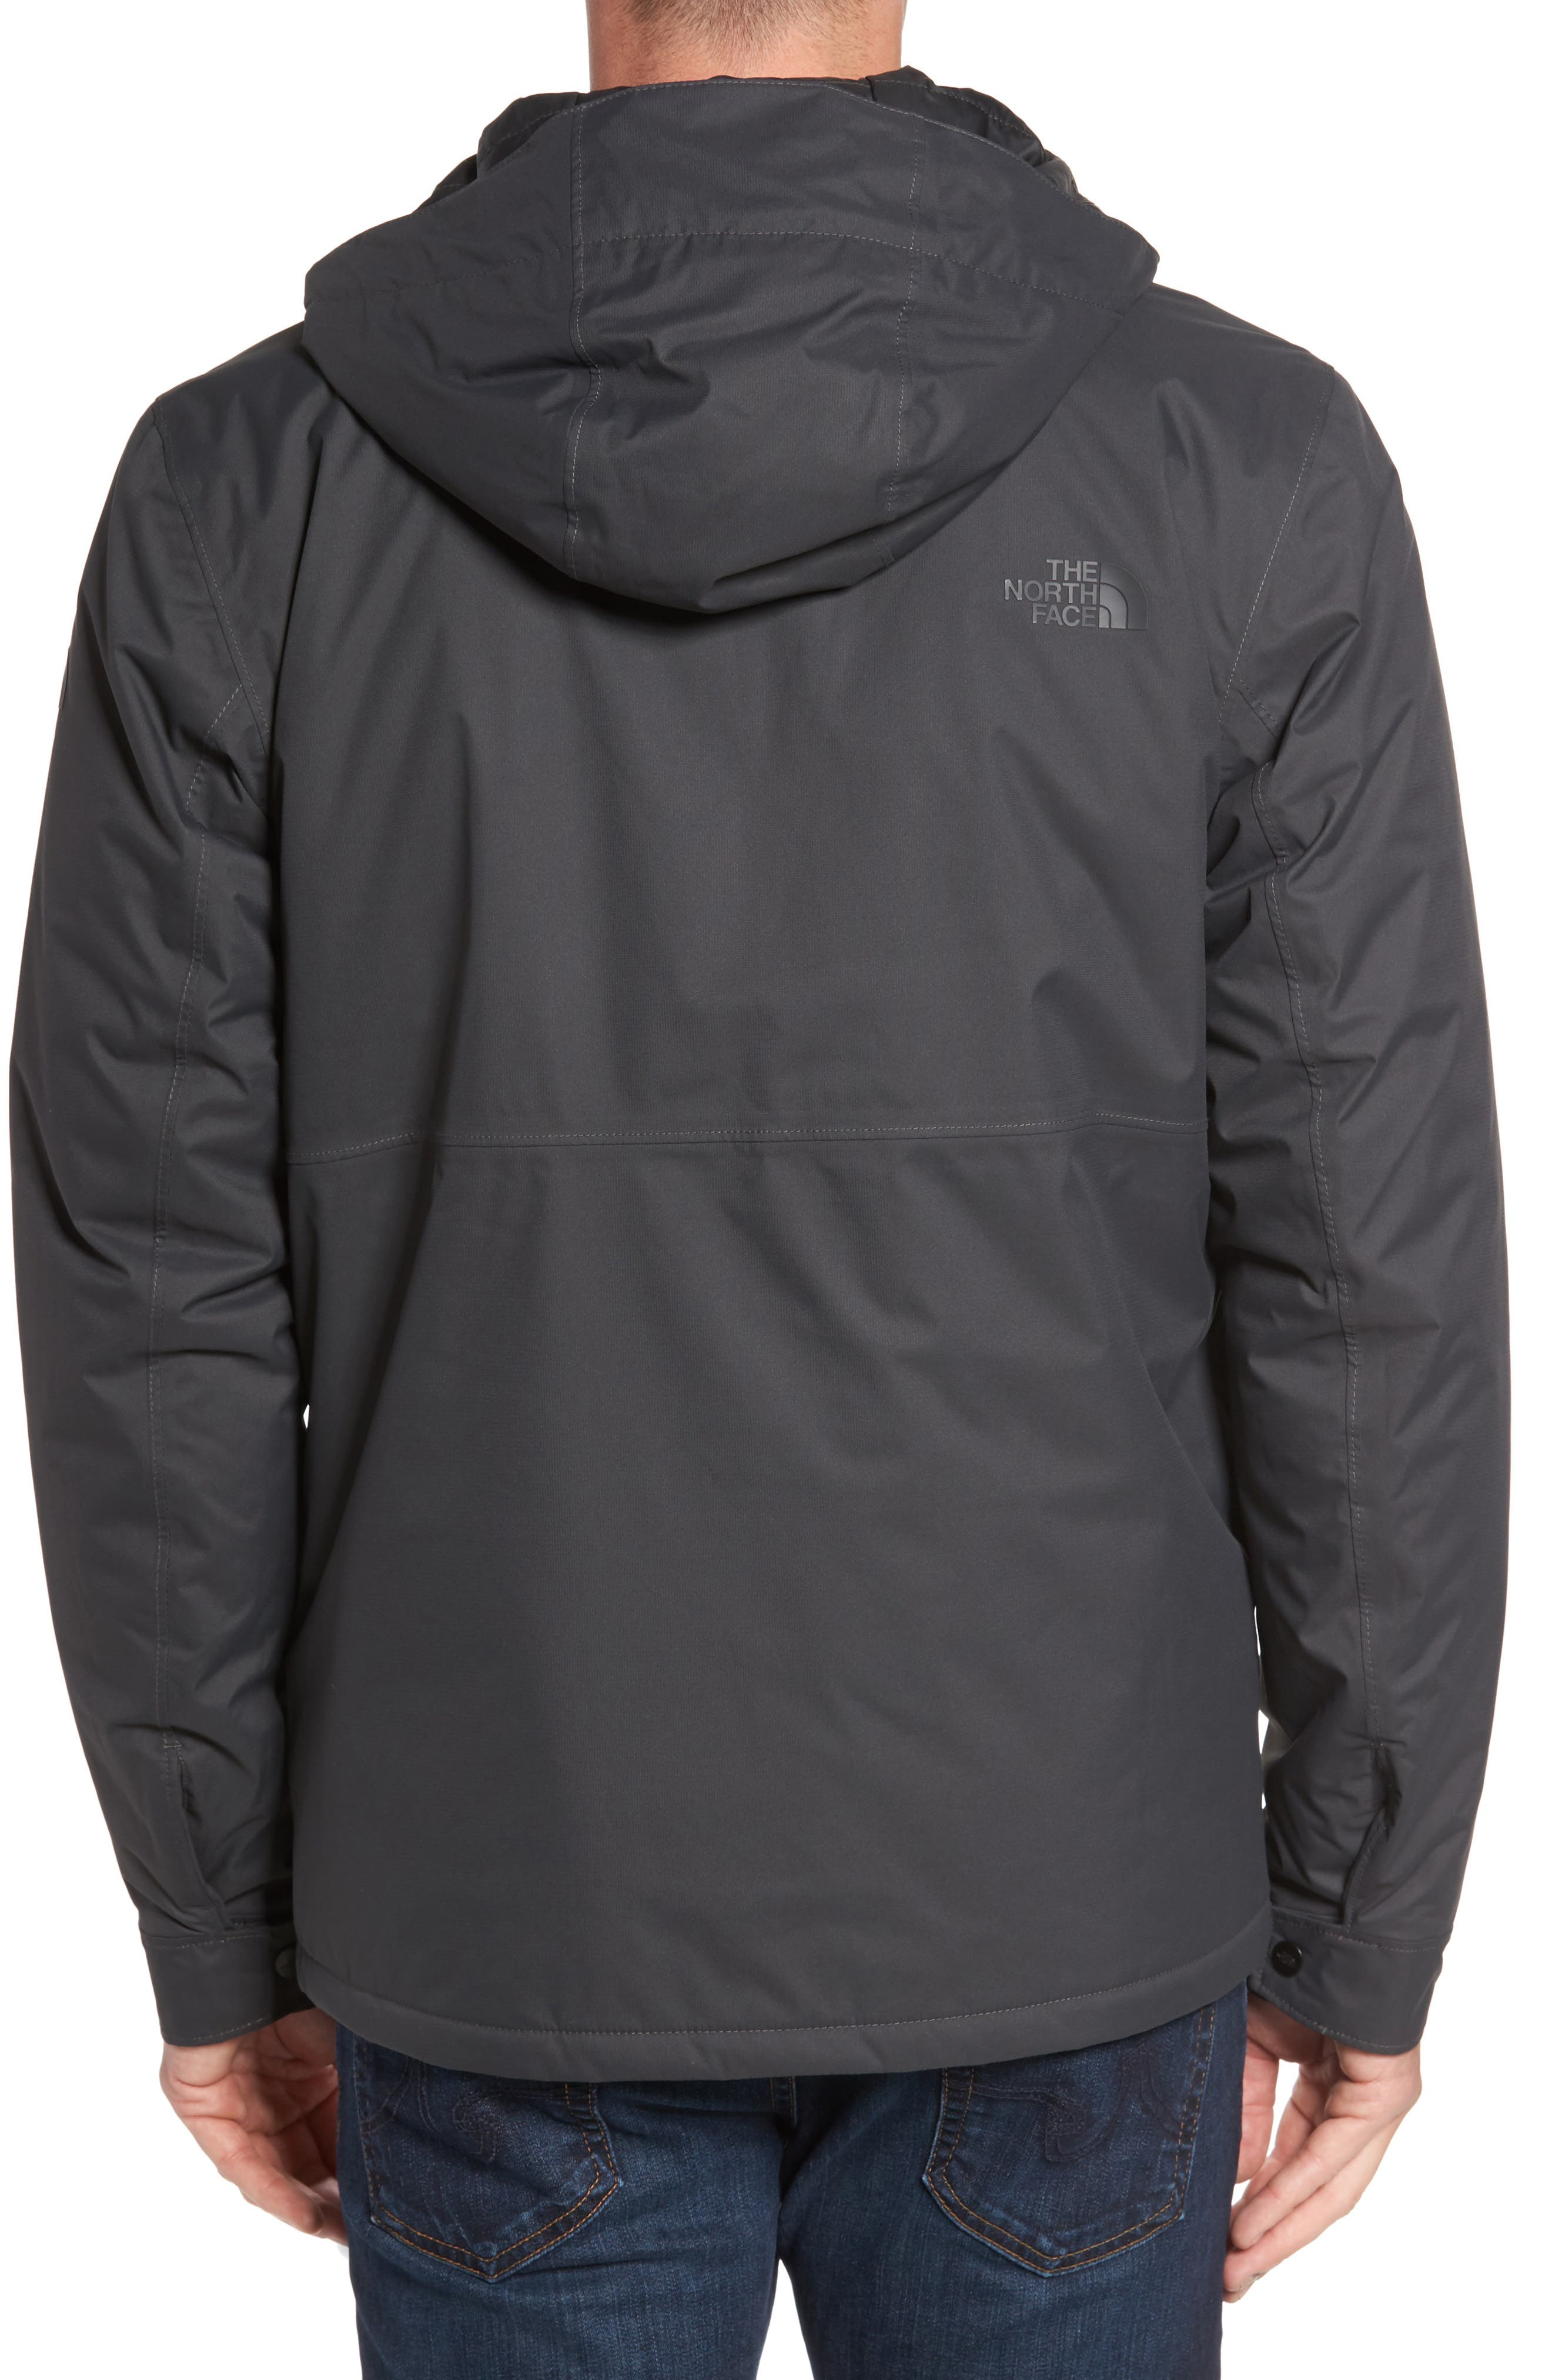 Jenison Insulated Waterproof Jacket,                             Alternate thumbnail 4, color,